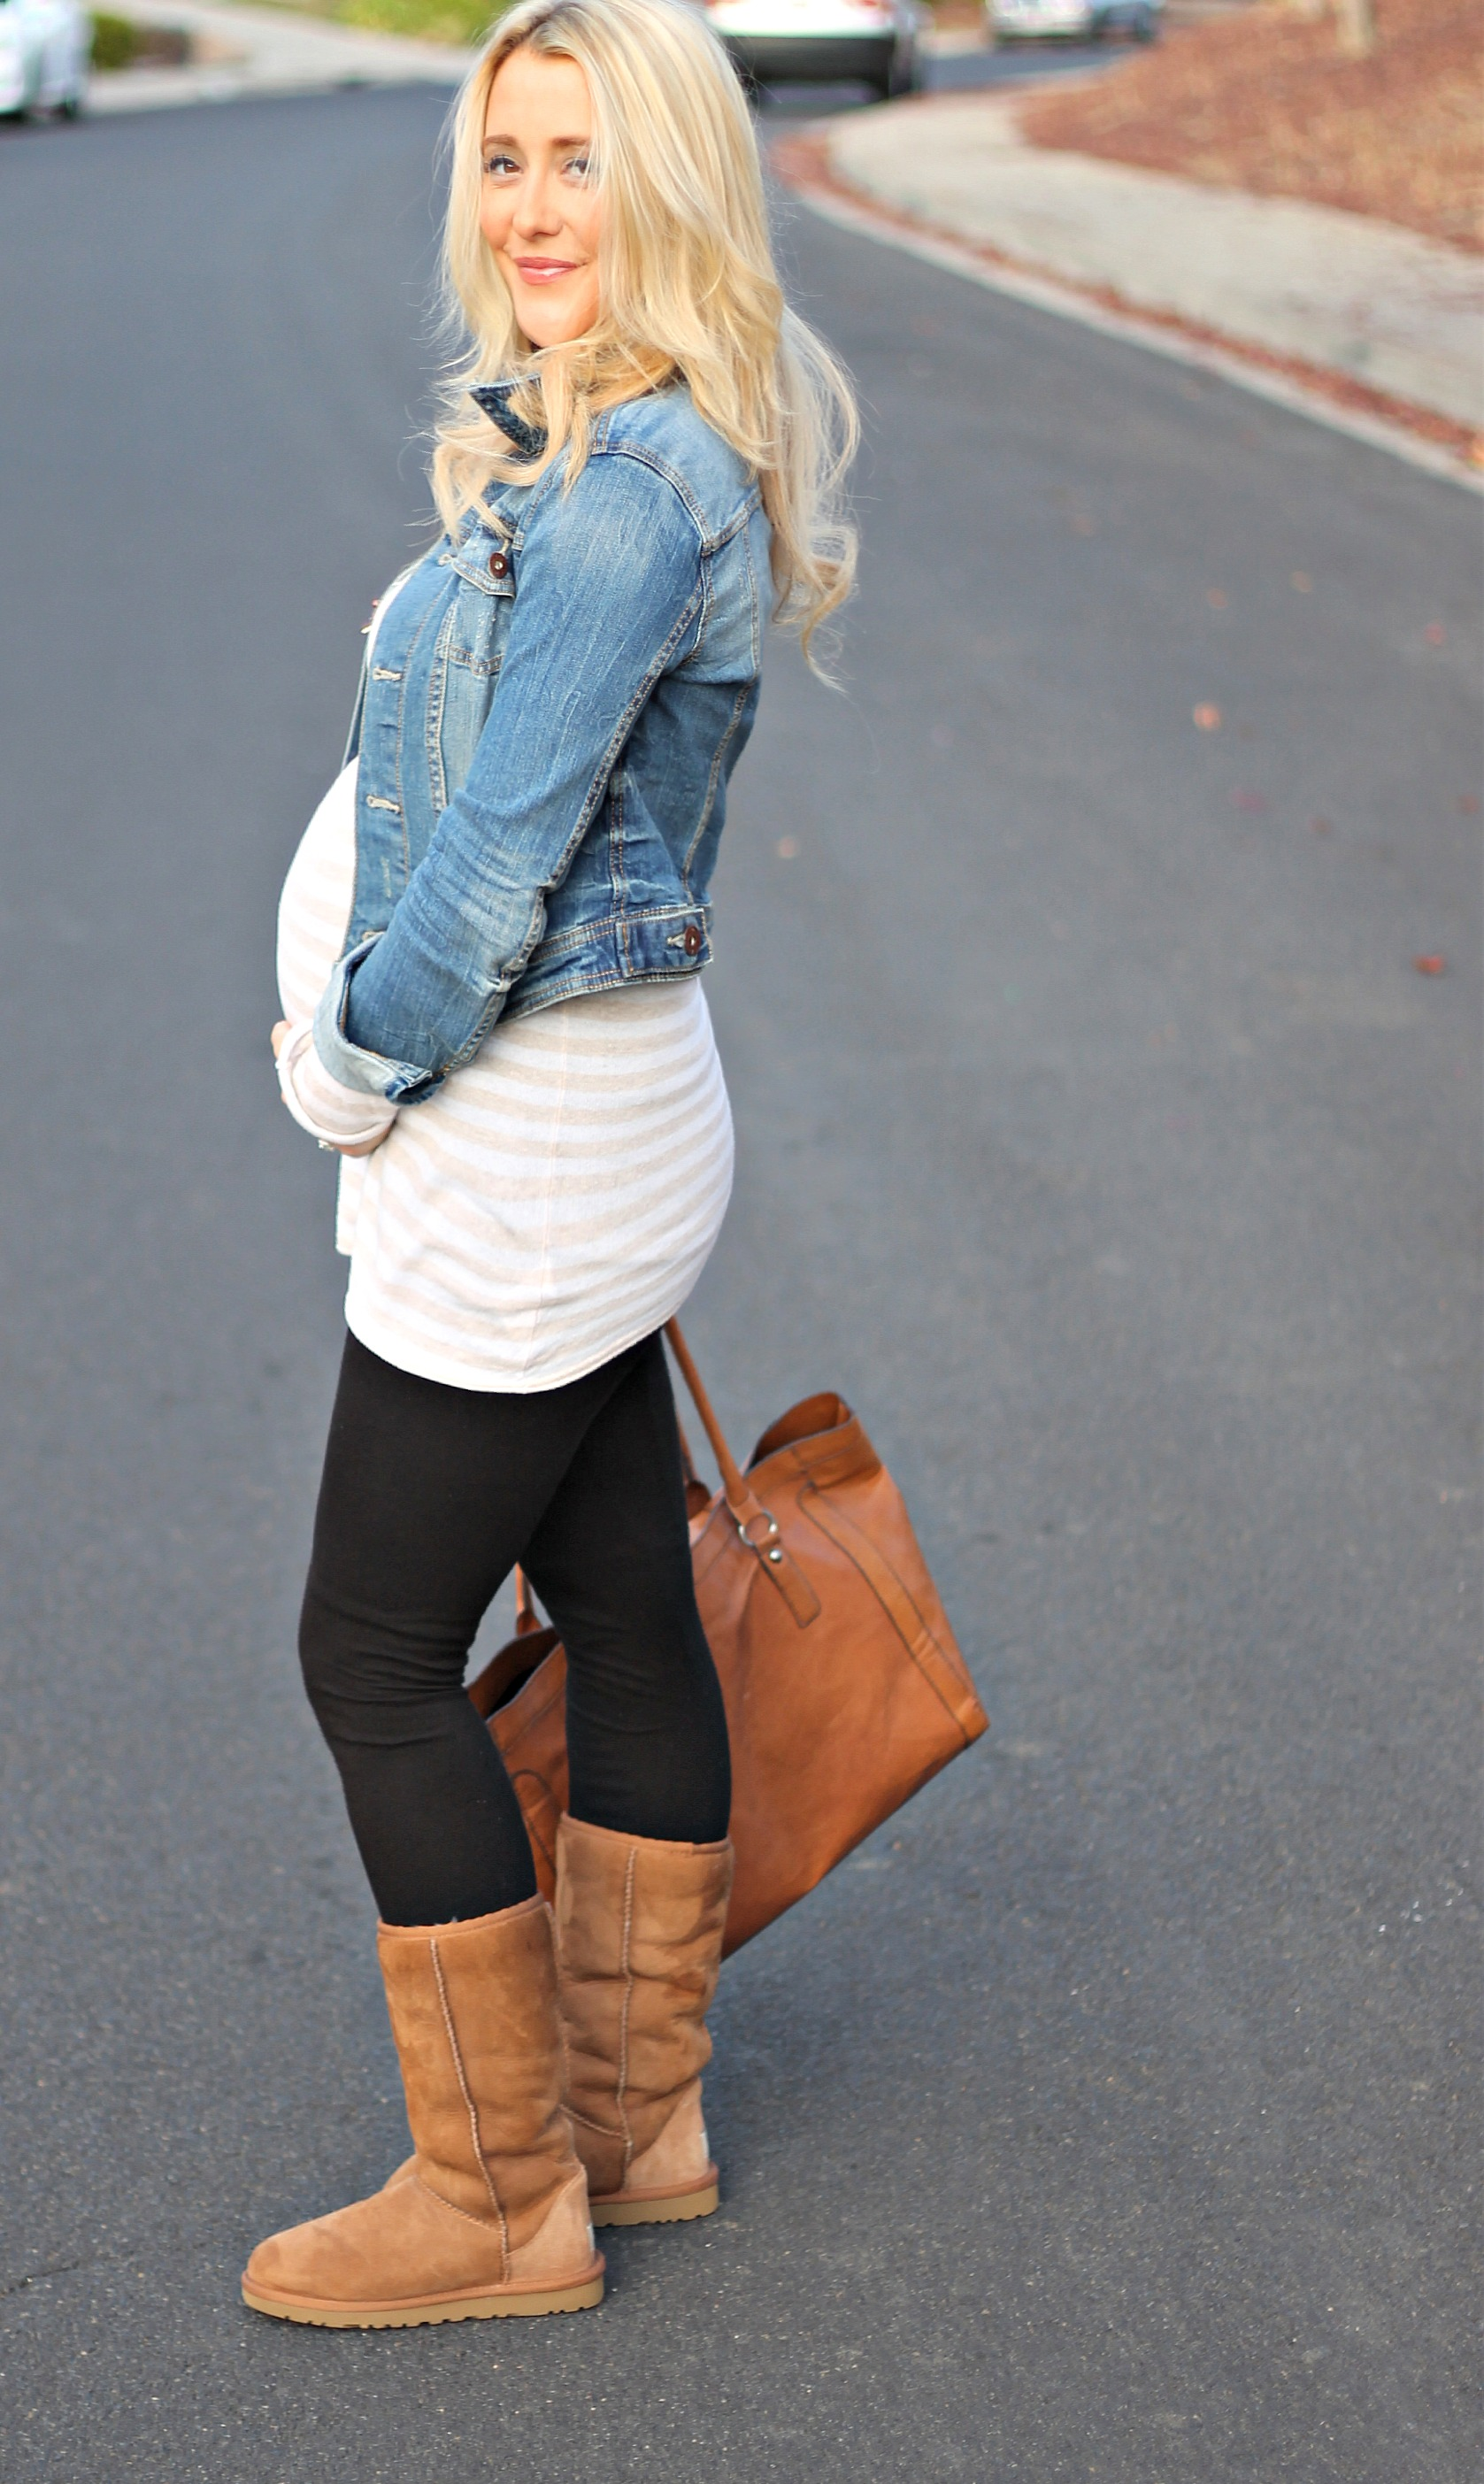 786add8e682a5 Cute Outfits To Wear With Leggings And Uggs